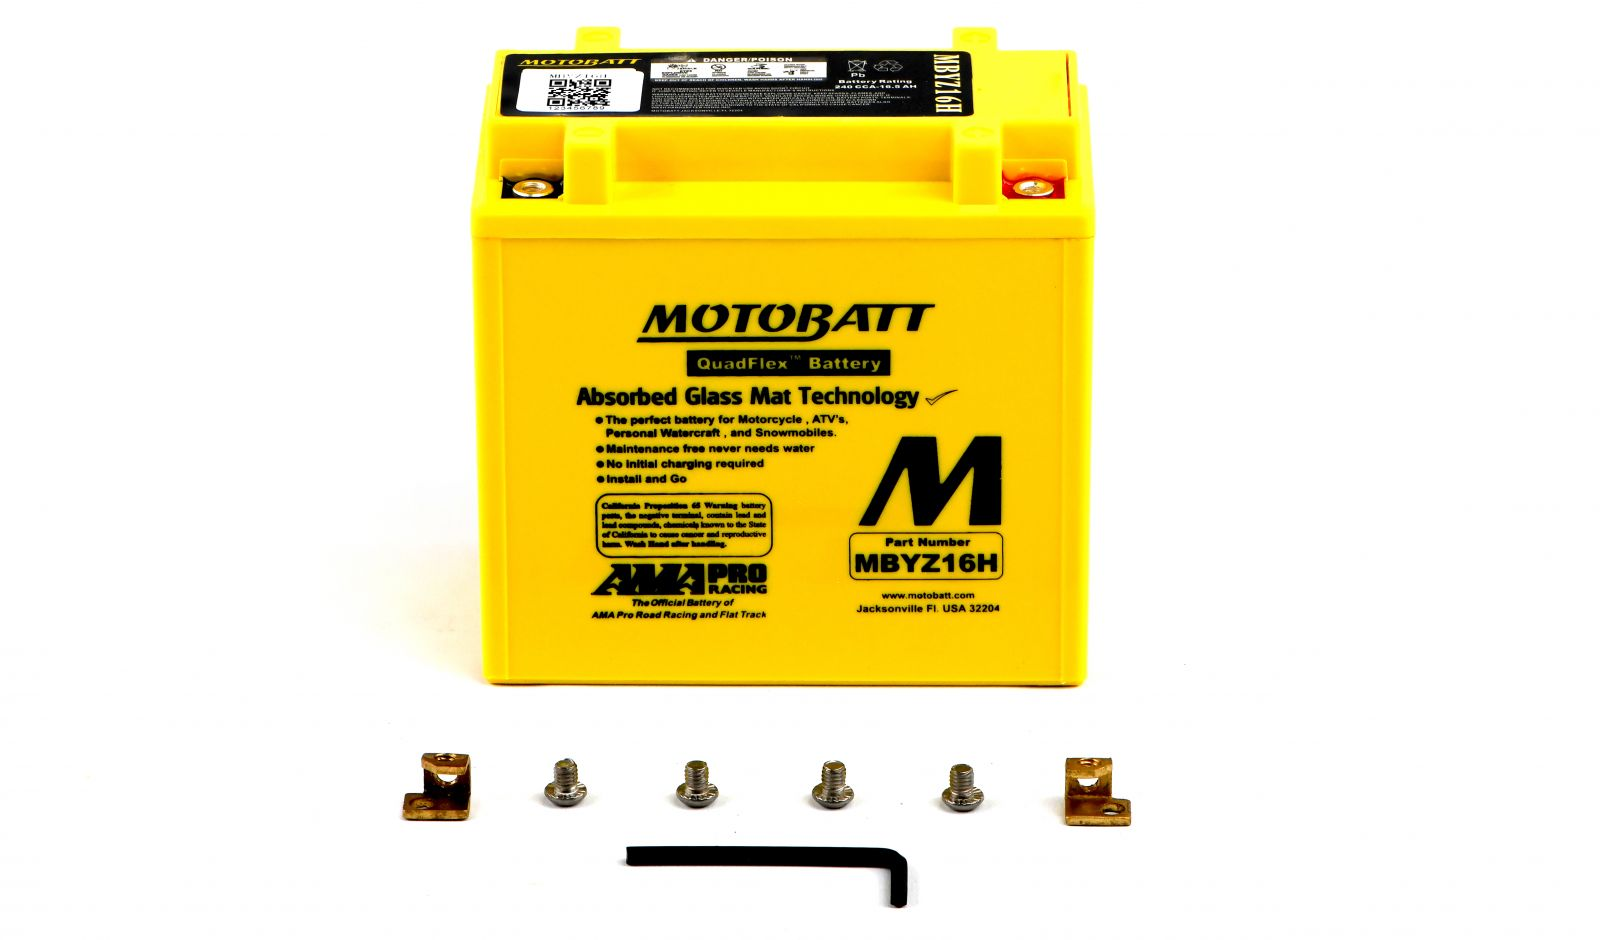 motobatt batteries - 501145MY image